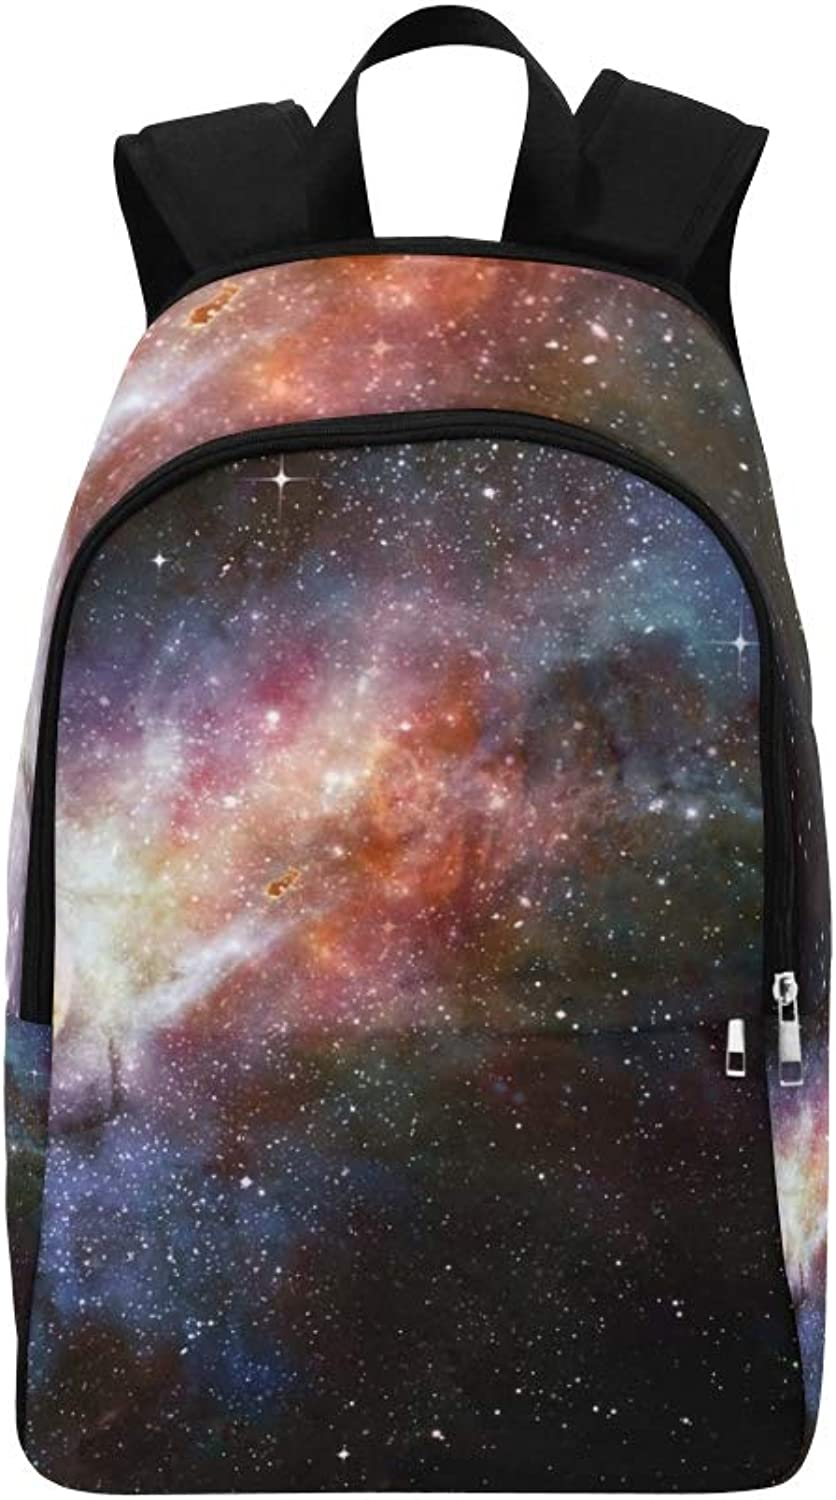 Deep Outer Space Stars Nebula Casual Daypack Travel Bag College School Backpack for Mens and Women